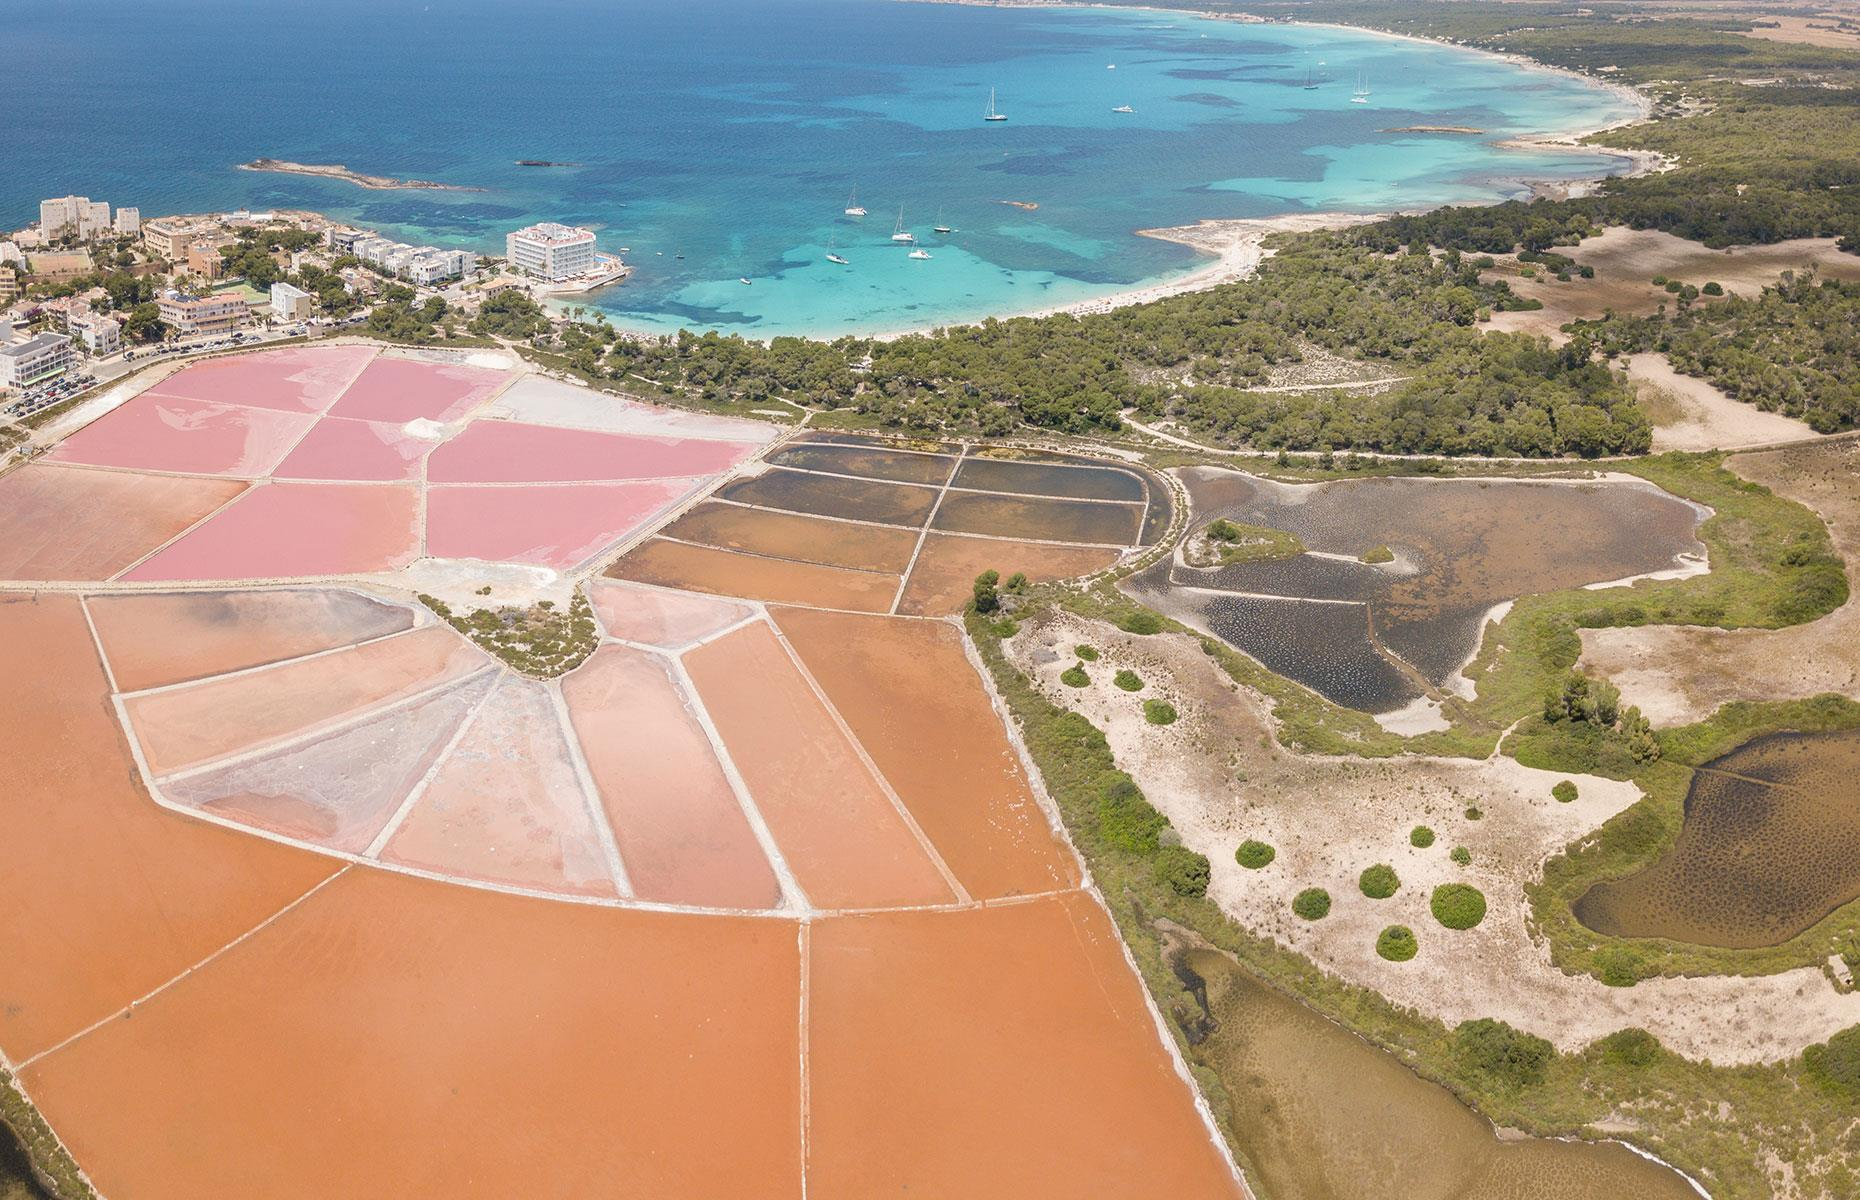 Slide 19 of 41: While it may look like a giant paint palette, this pink landscape is actually made up of salt flats and is situated in the seaside resort of Colonia de Sant Jordi in Mallorca's Ses Salines district. Salt is a major export here and a great source of local pride – a symbol of a salt mound even appears on the area's coat of arms. The colors – earthy pink, deep tan and rich nude – pop when captured from up high.